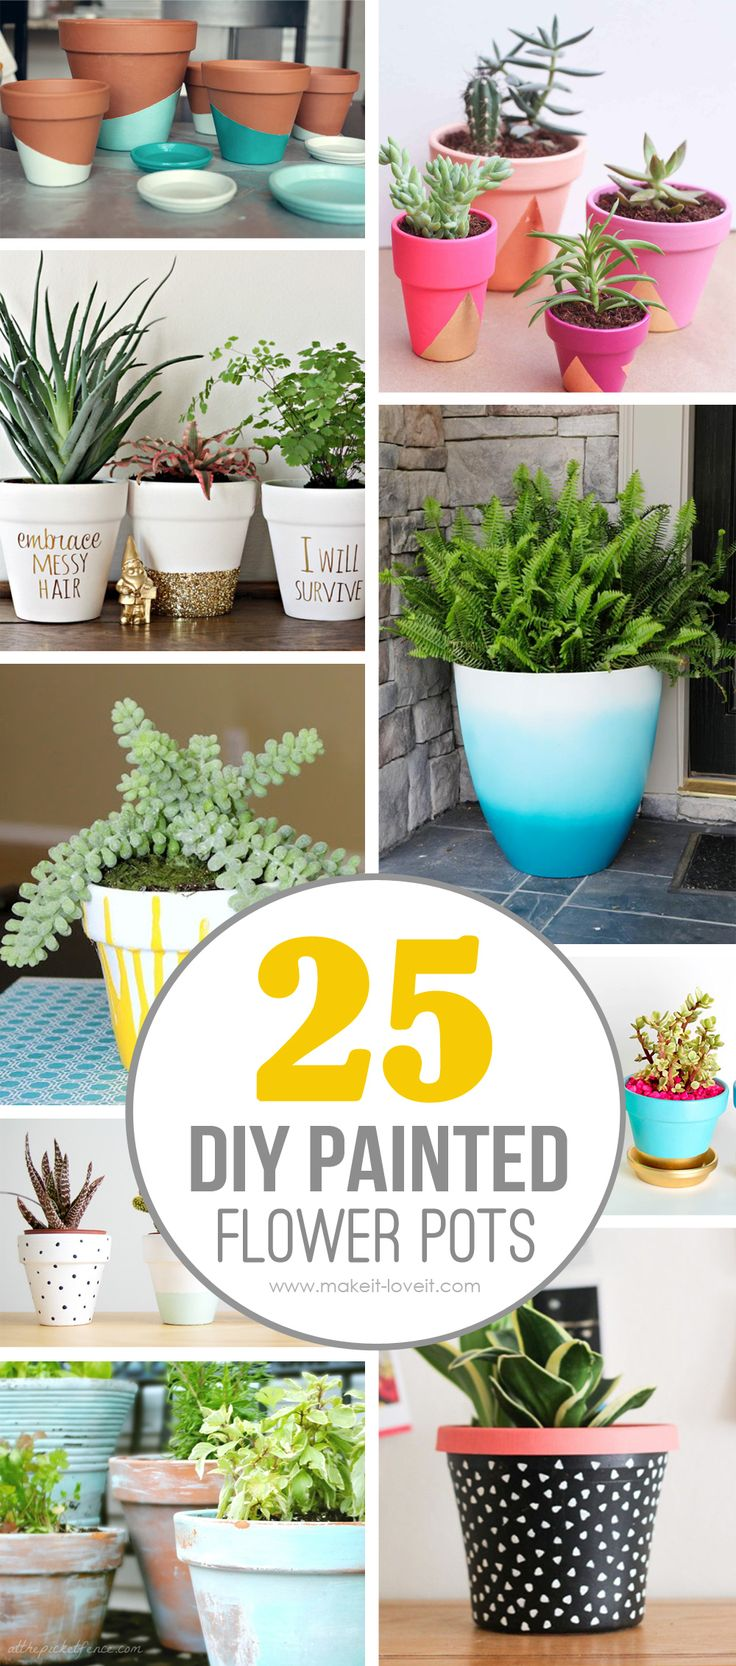 25 Design Ideas To Paint Terracotta Flower Pots | Paint Flowers, Flower And  Gardens